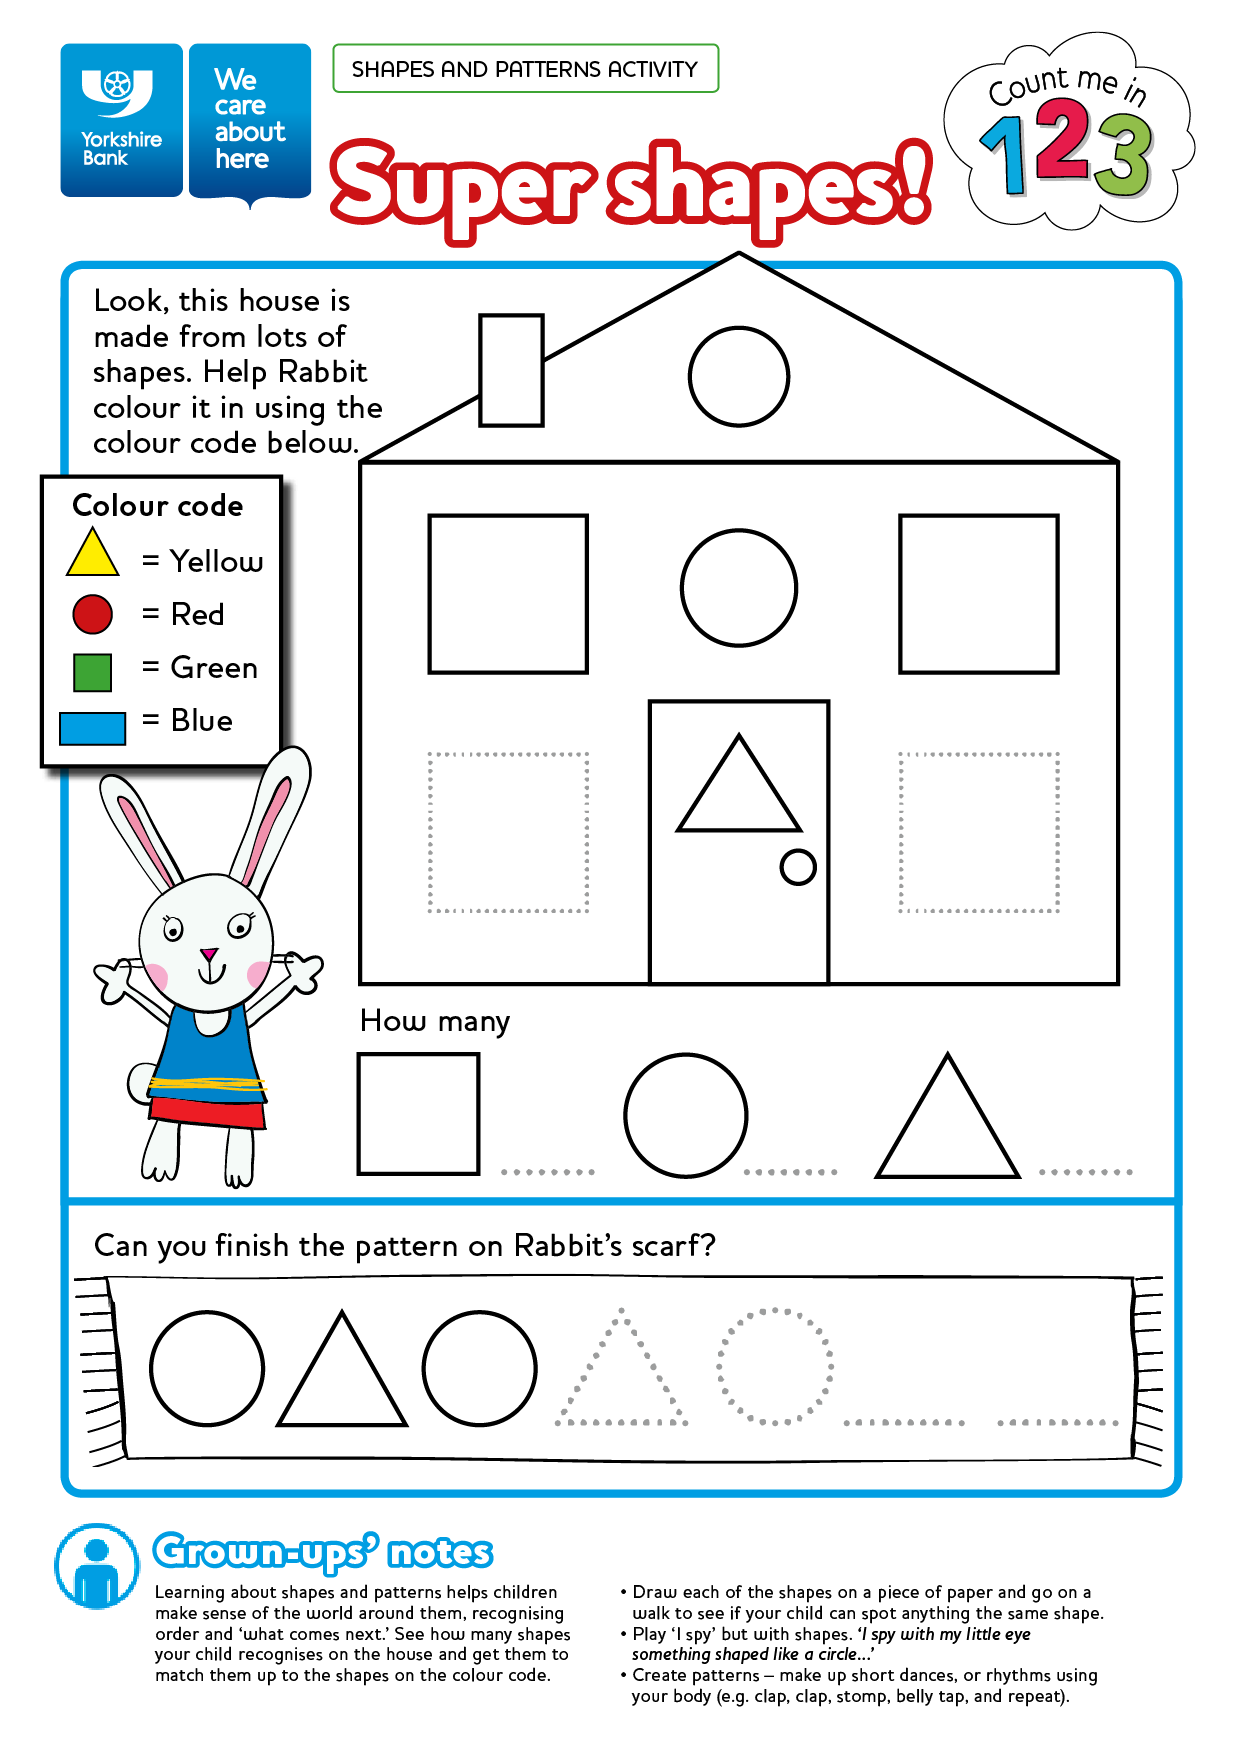 Worksheet Color Shape Code